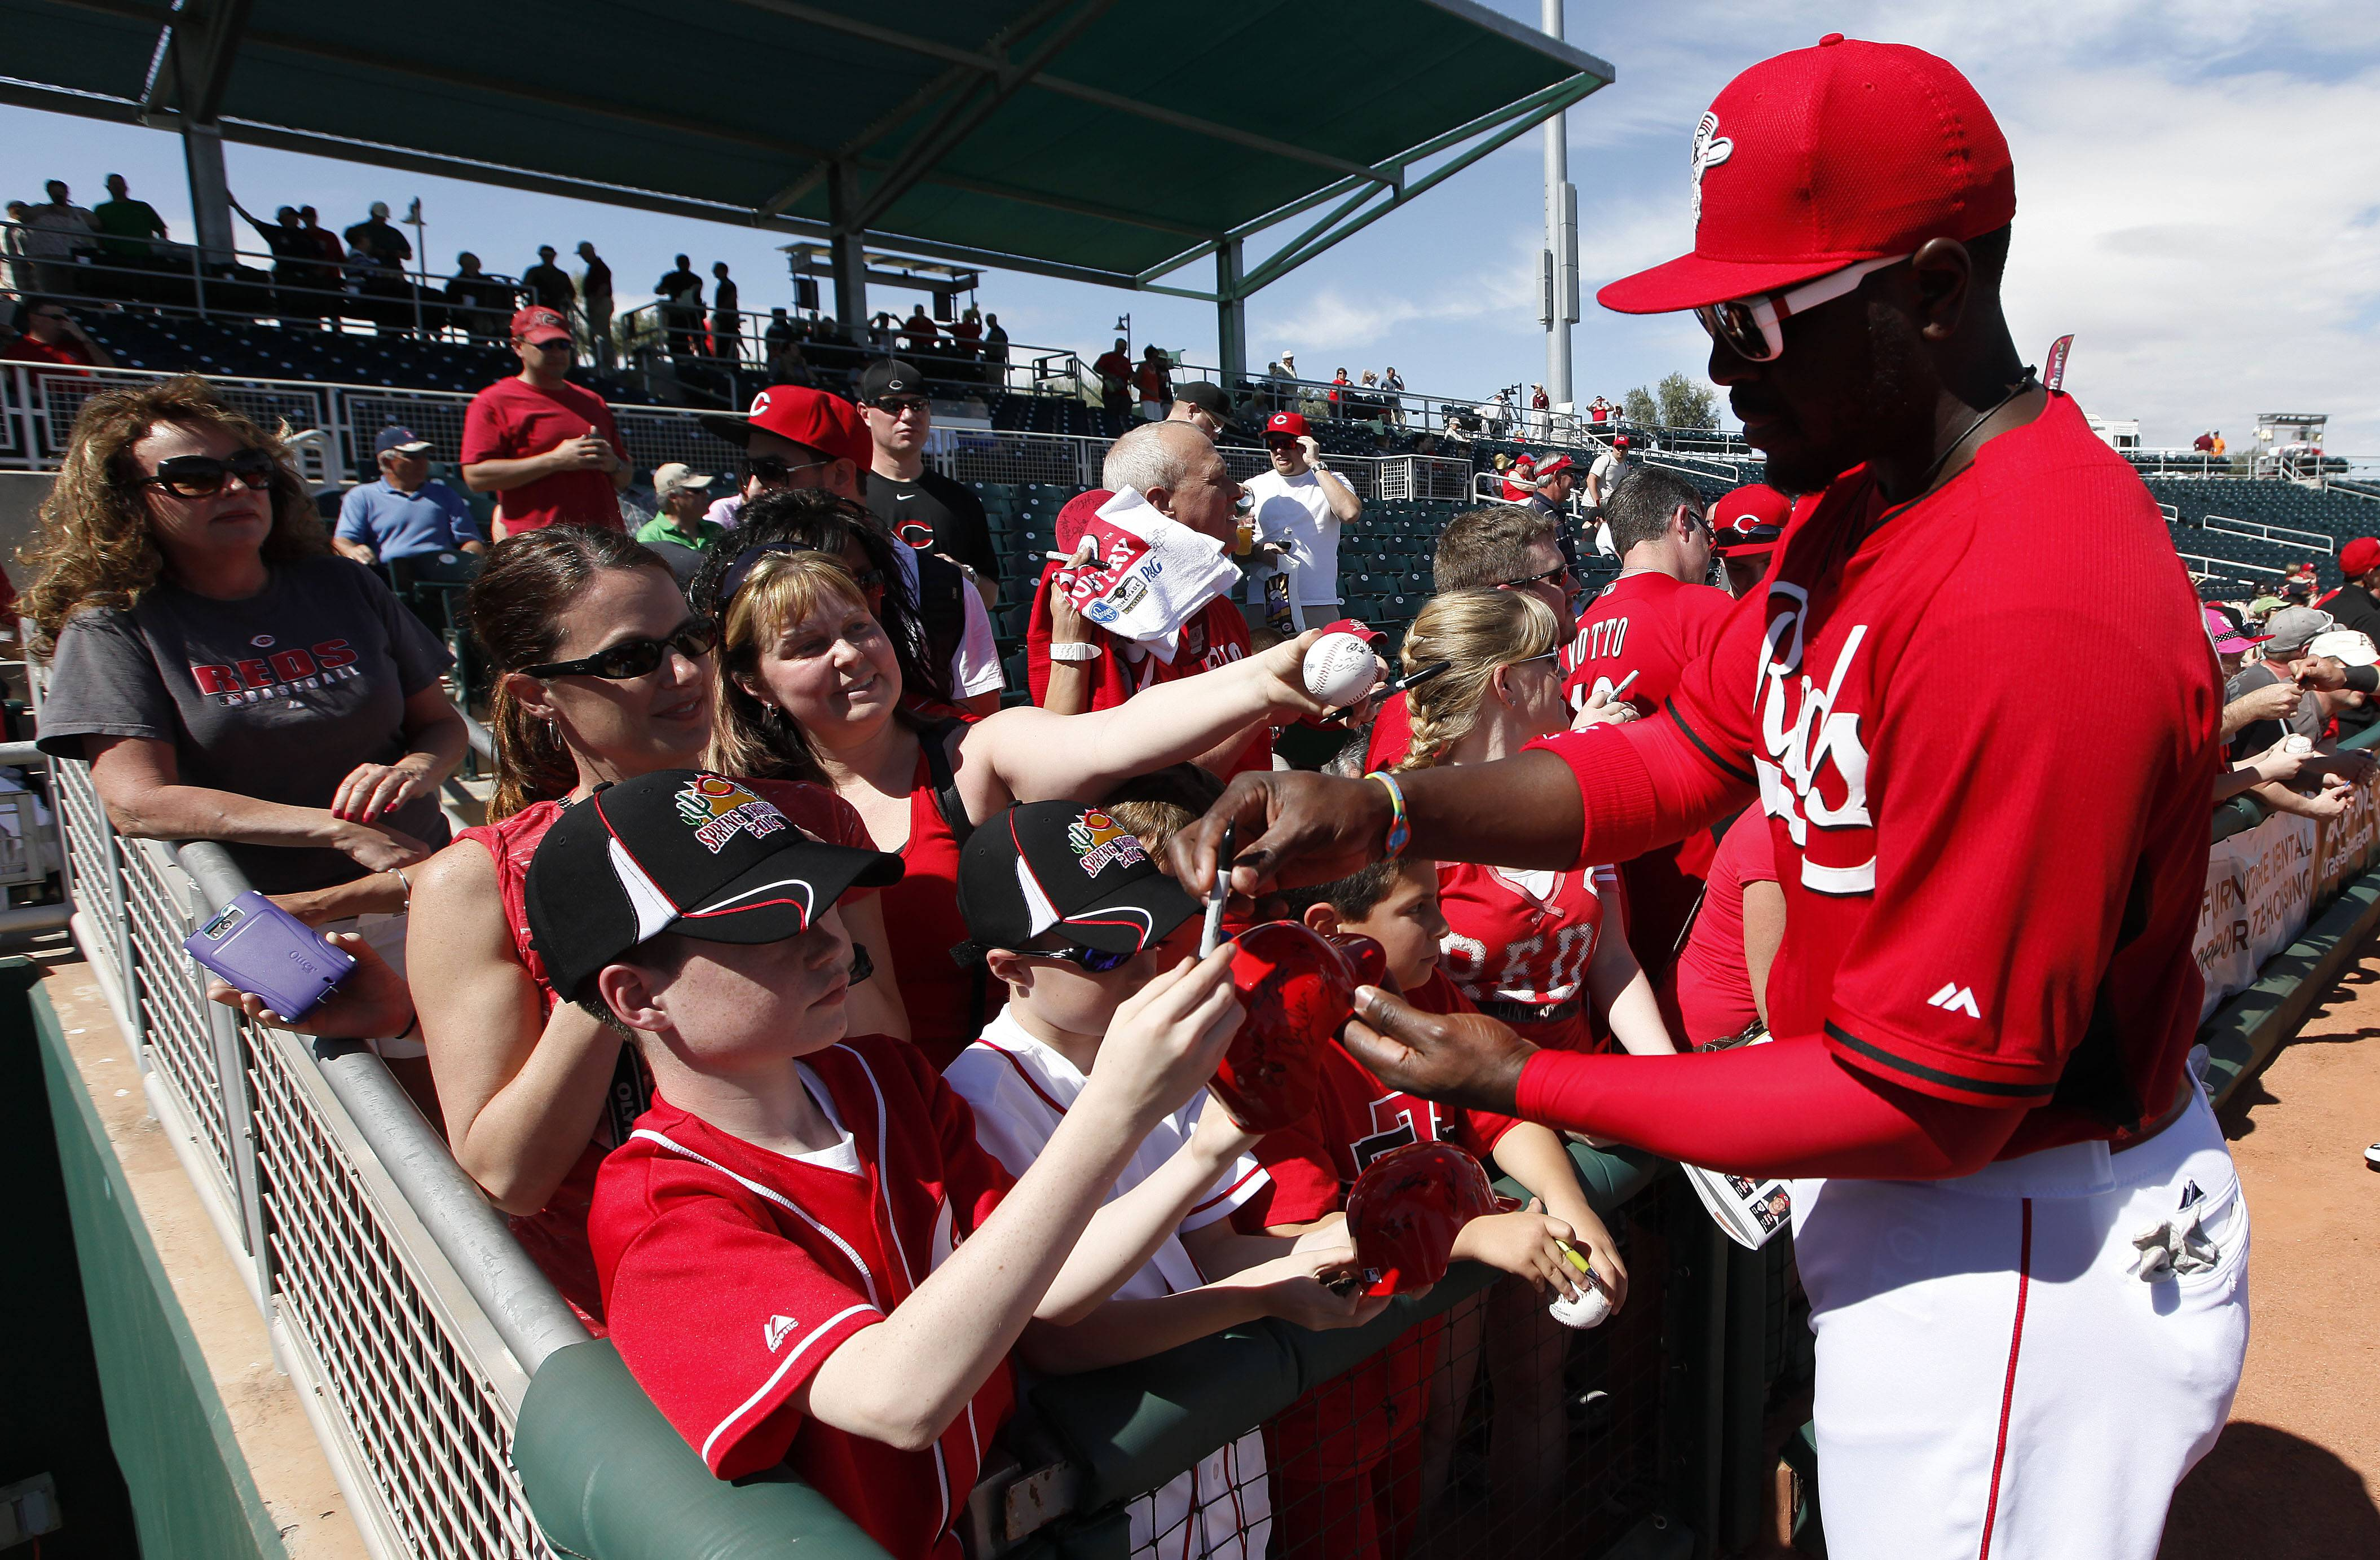 Cincinnati's Brandon Phillips signs autographs before a Feb. 27 exhibition baseball game against the Cleveland Indians in Goodyear, Ariz.